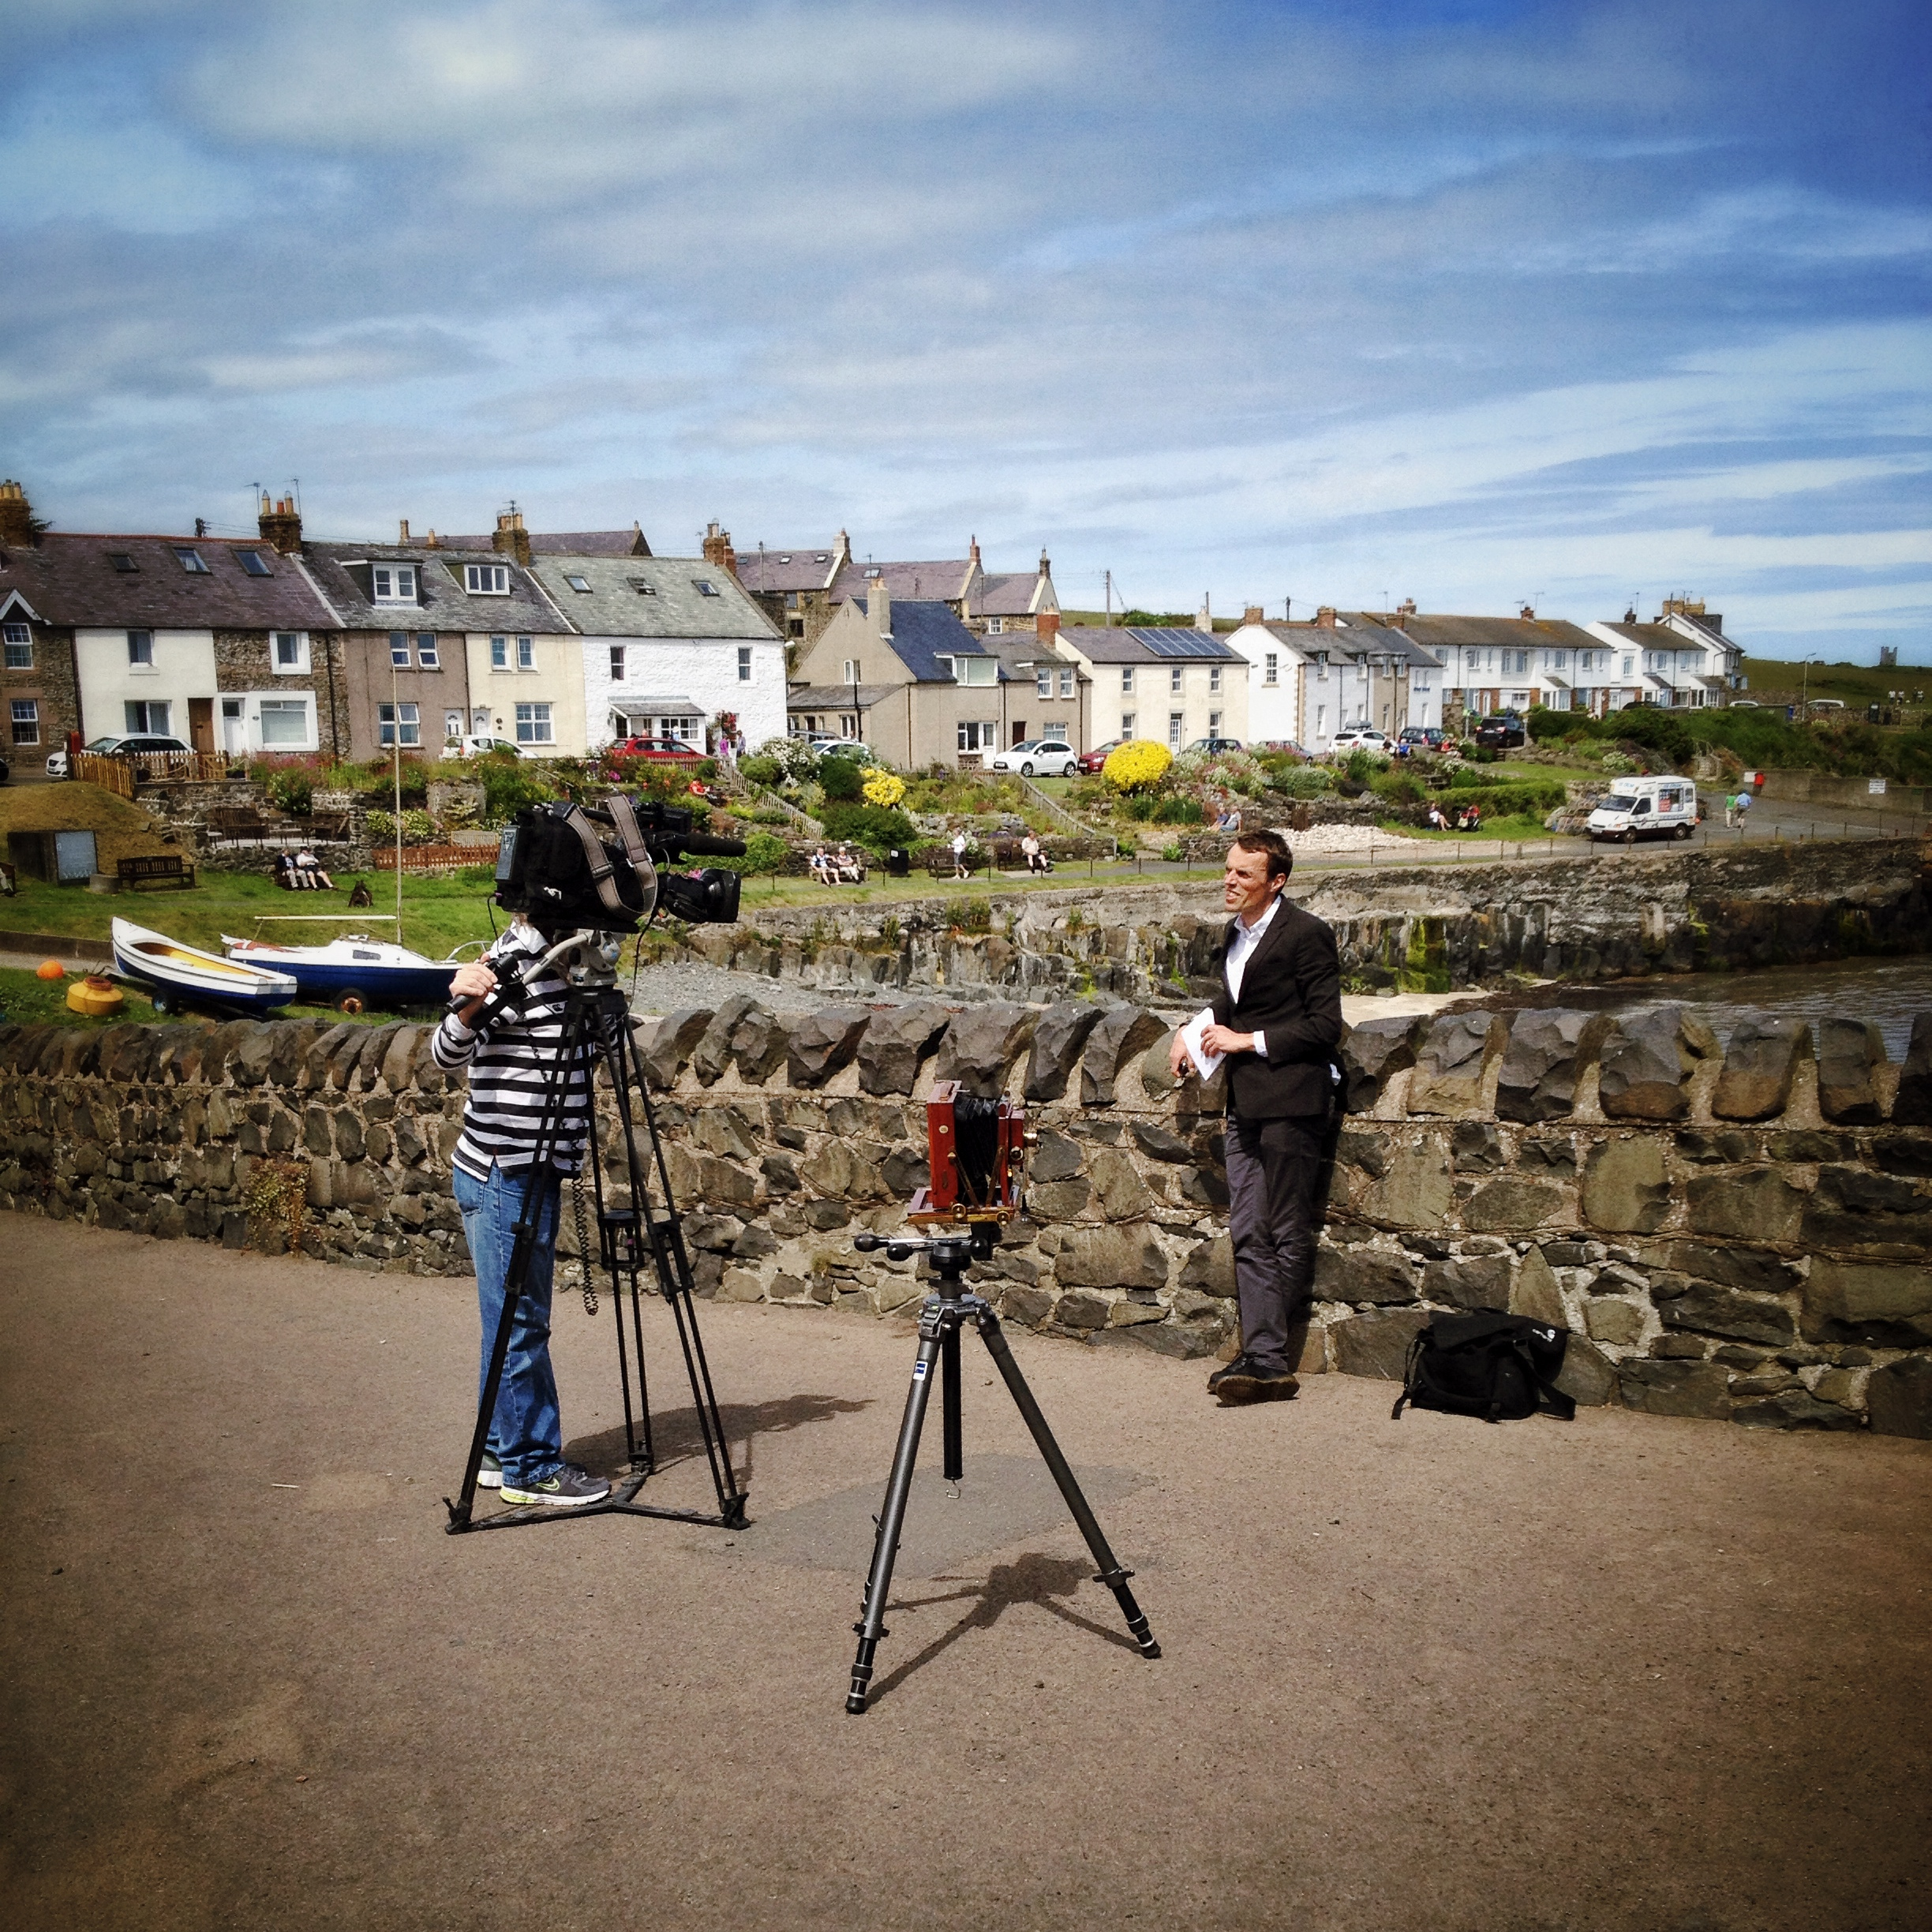 The Lifeboat Station Project, Craster